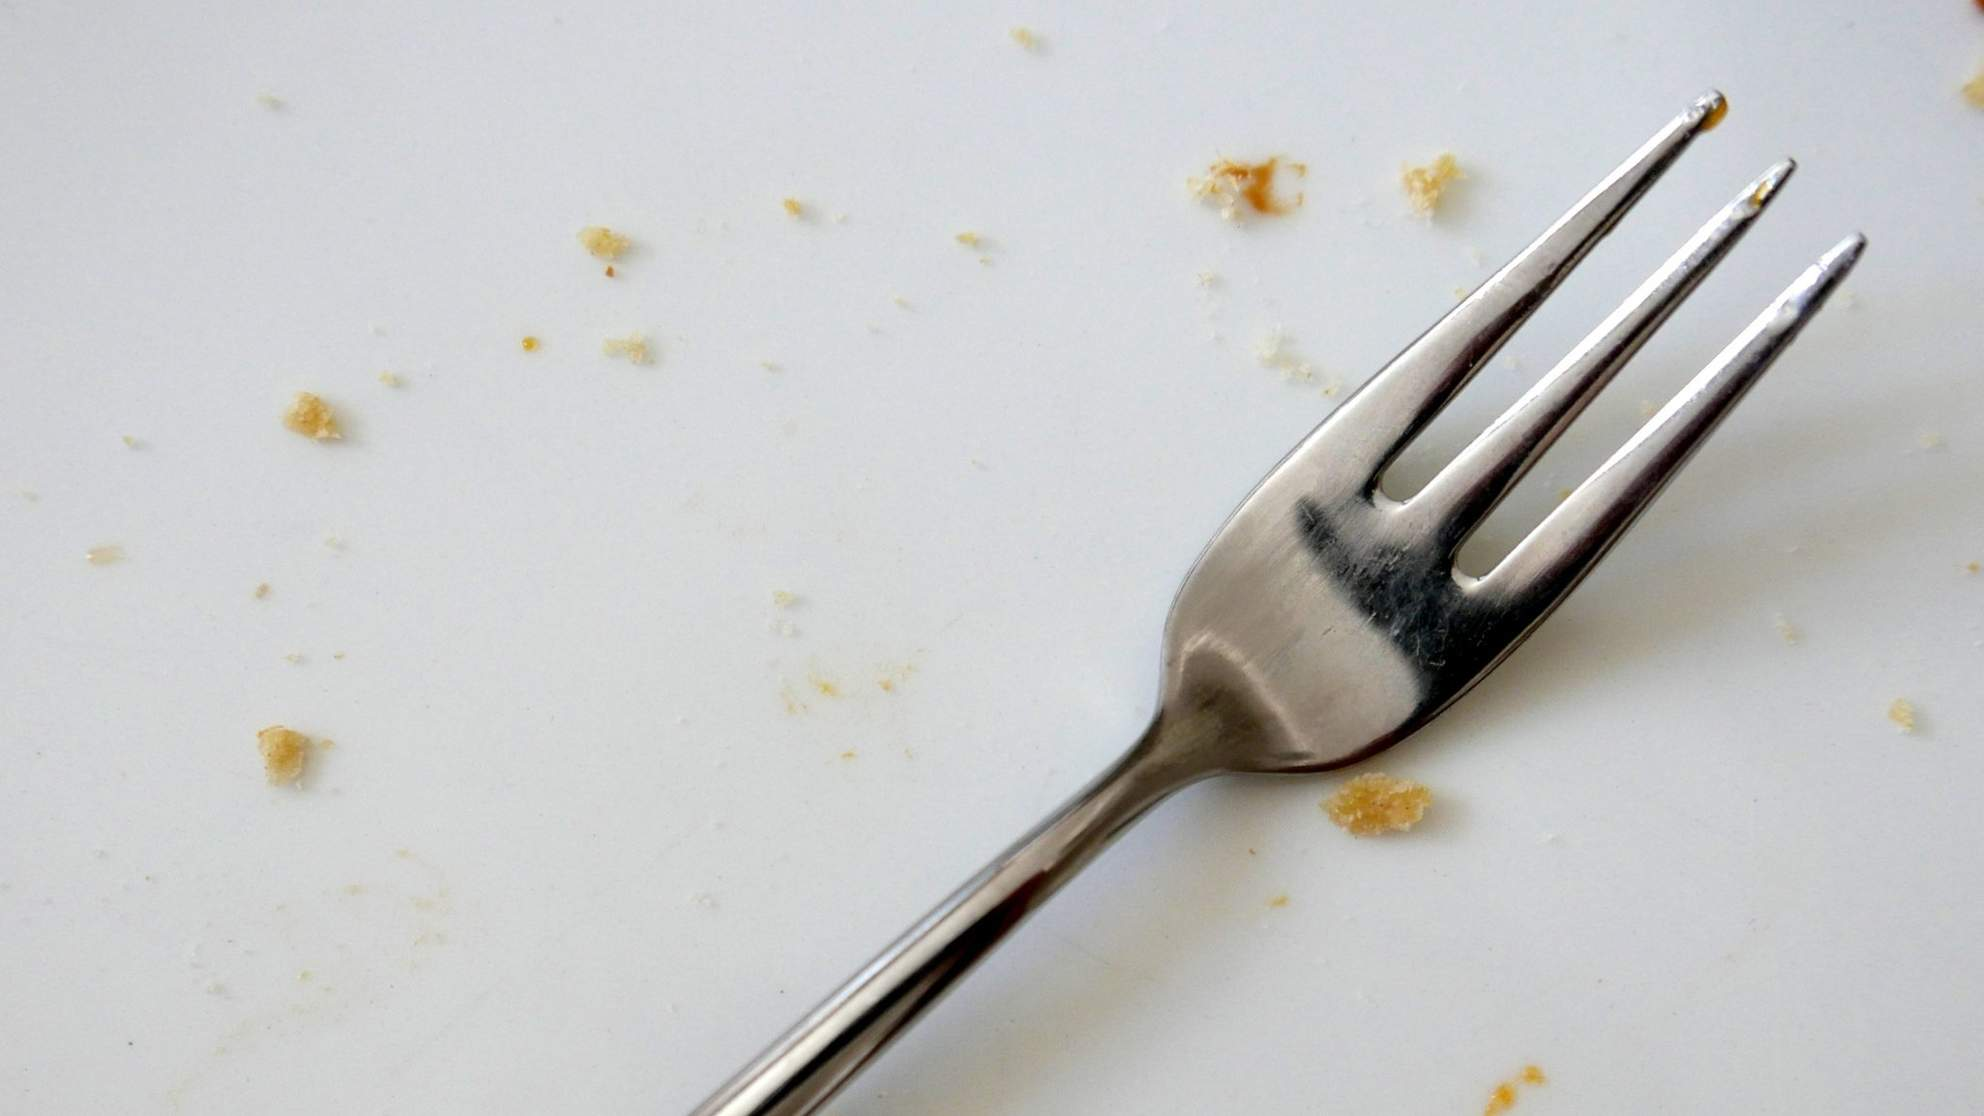 Close-Up Of Fork With Scattered Food Against White Background